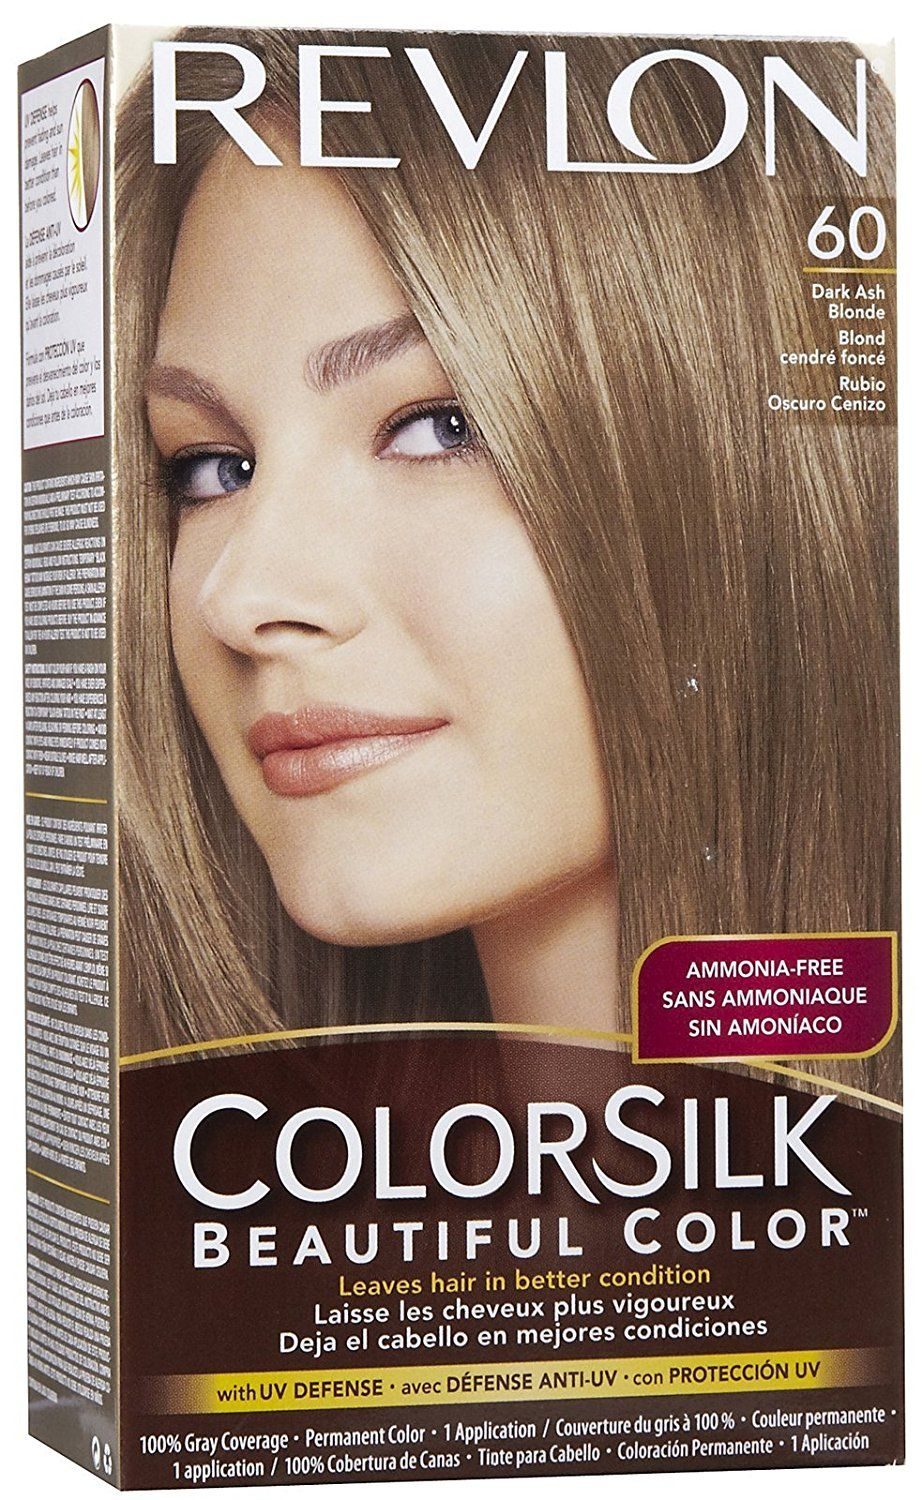 Revlon Colorsilk Beautiful Haircolor Ammonia Free Permanent